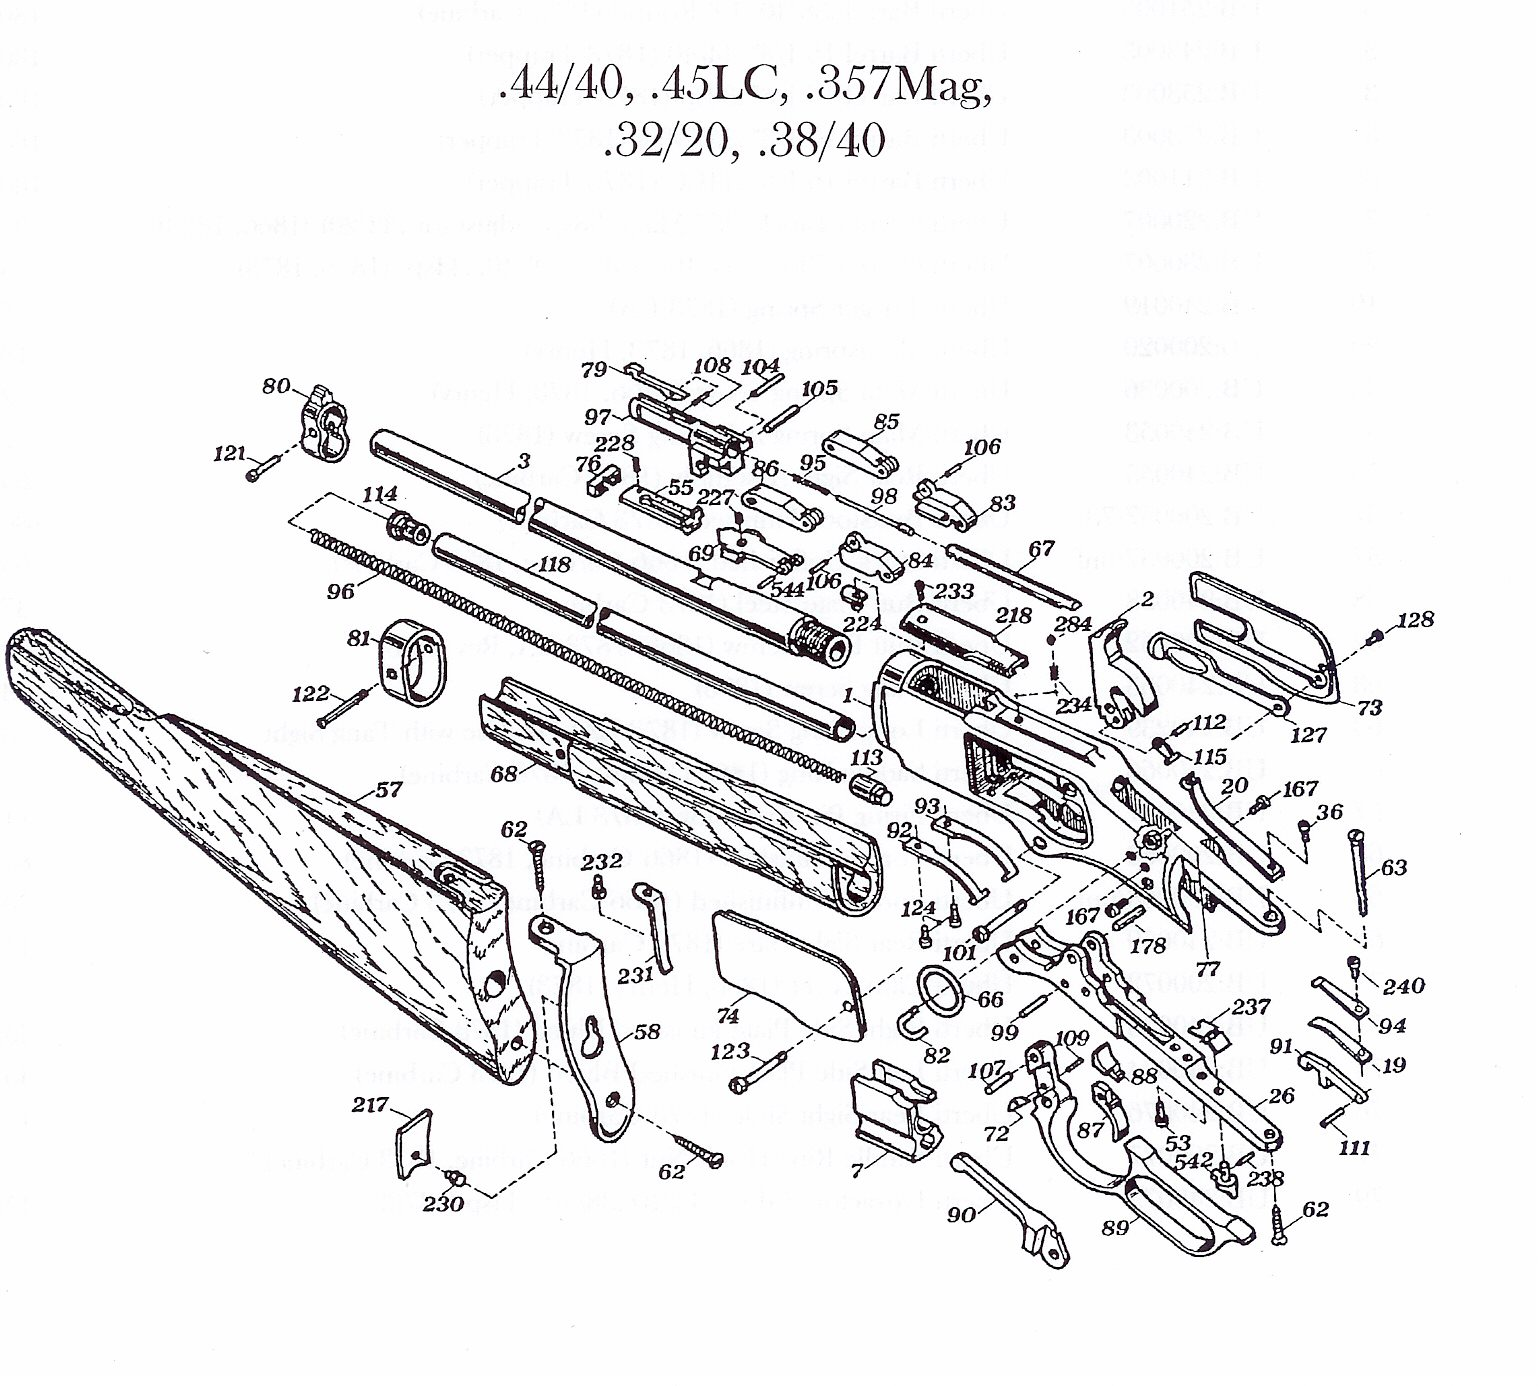 winchester model 94 parts diagram diesel generator wiring schematic for get free image about